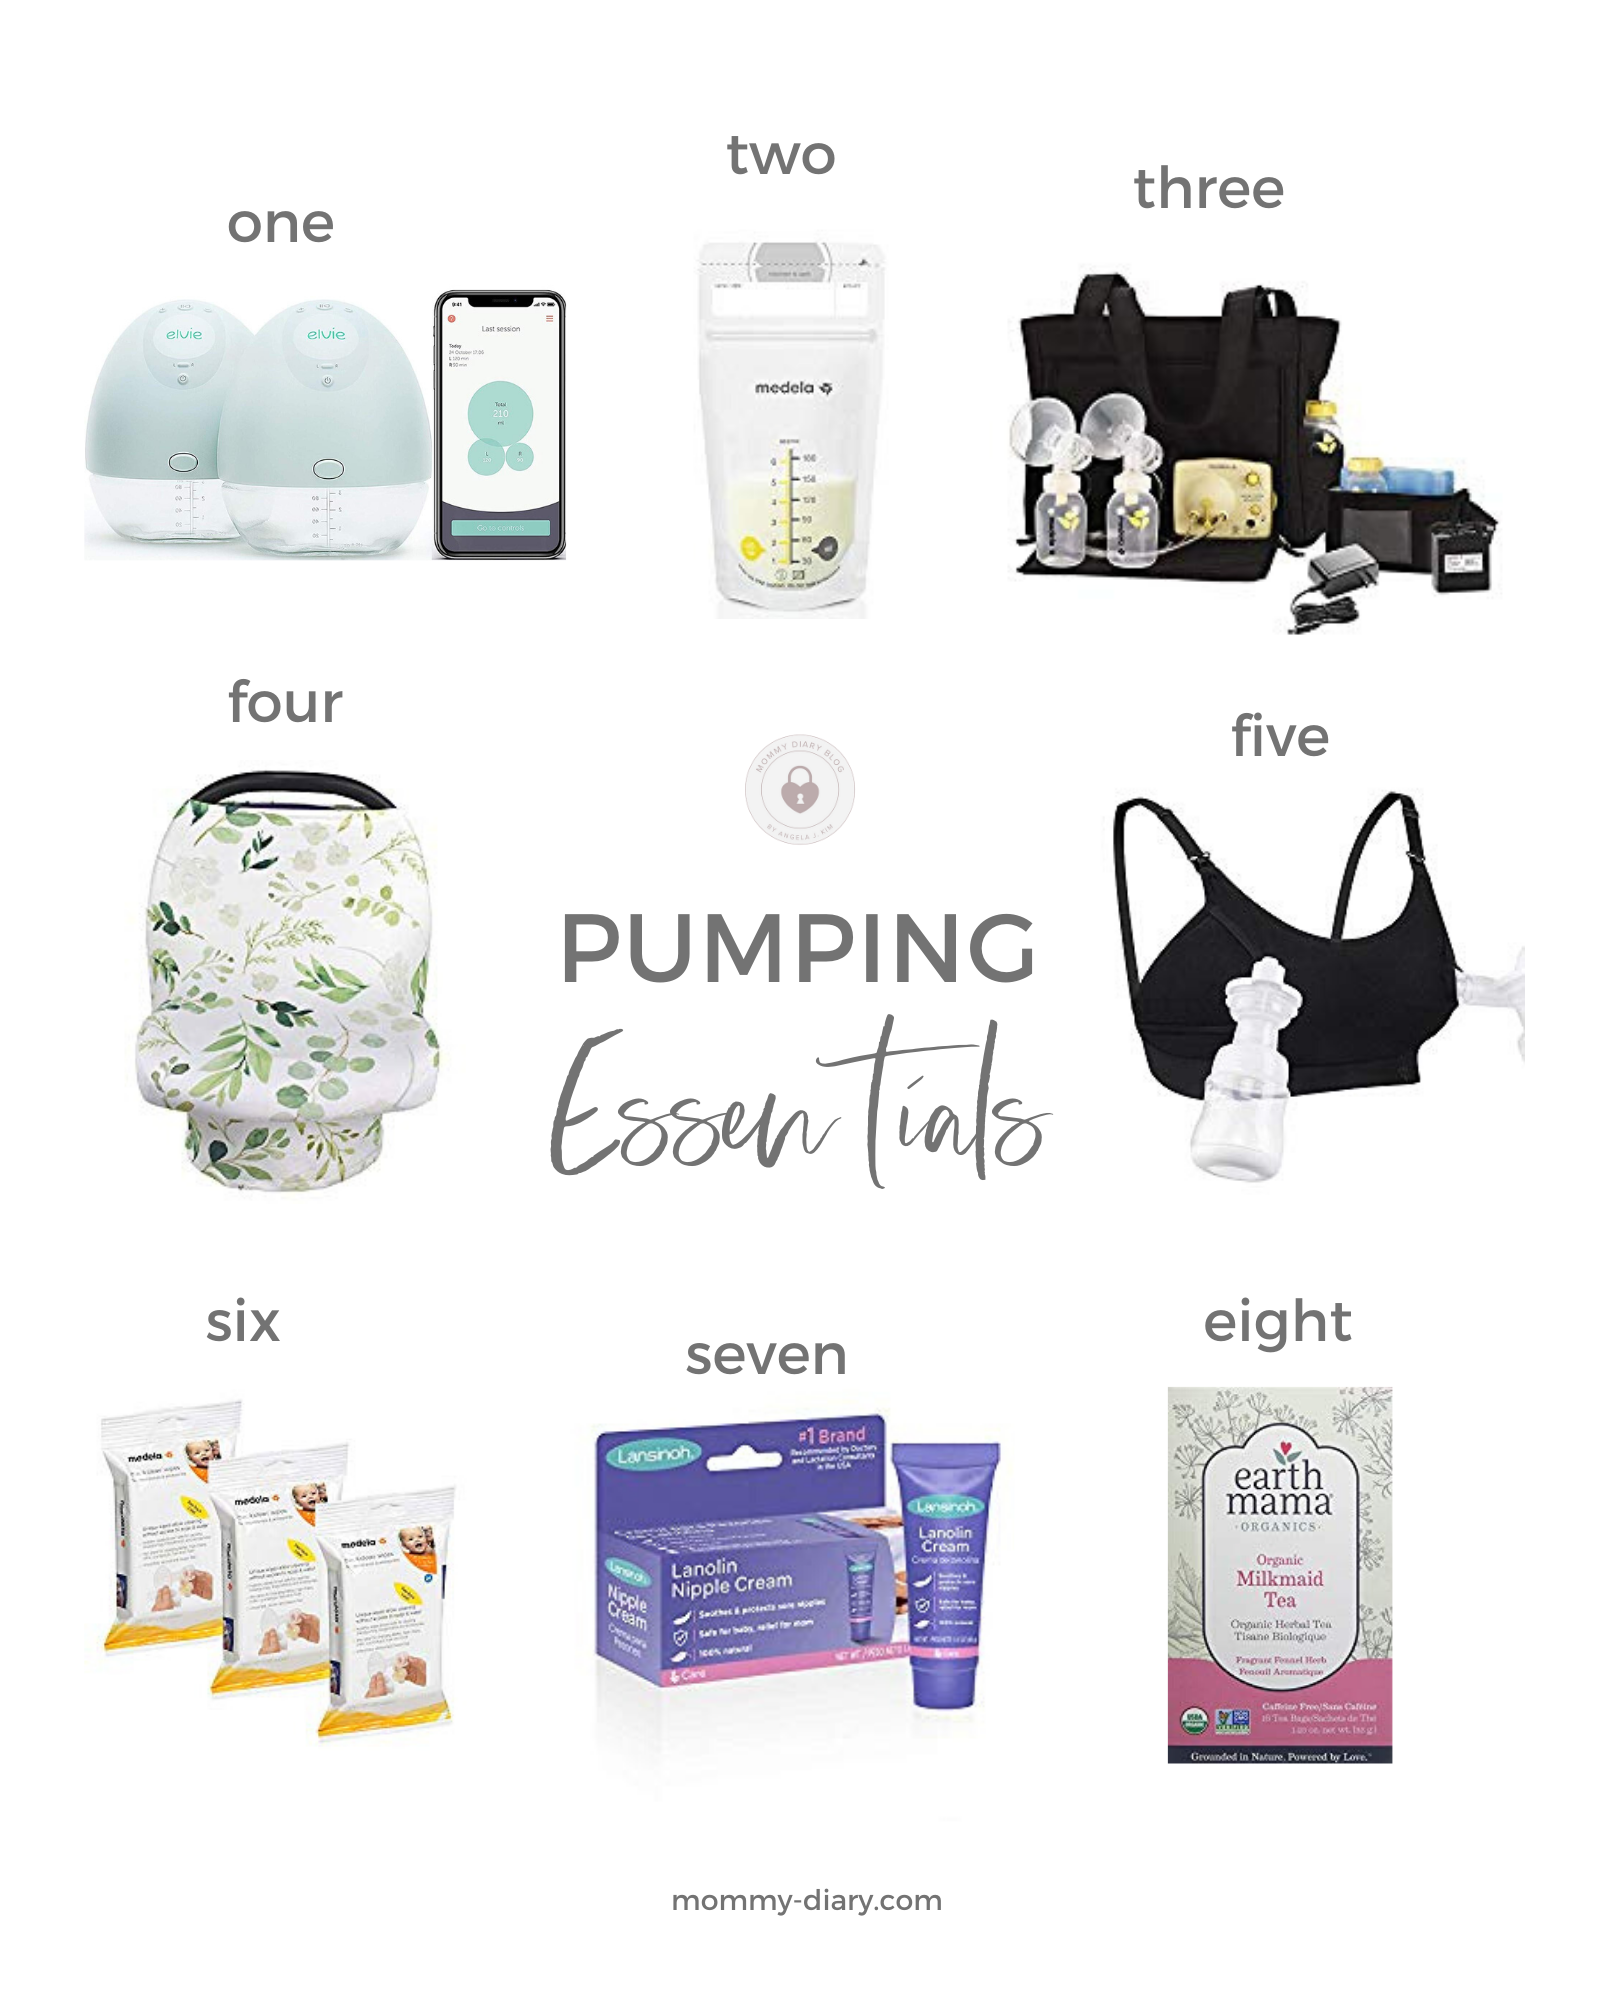 Pumping Essentials for Moms